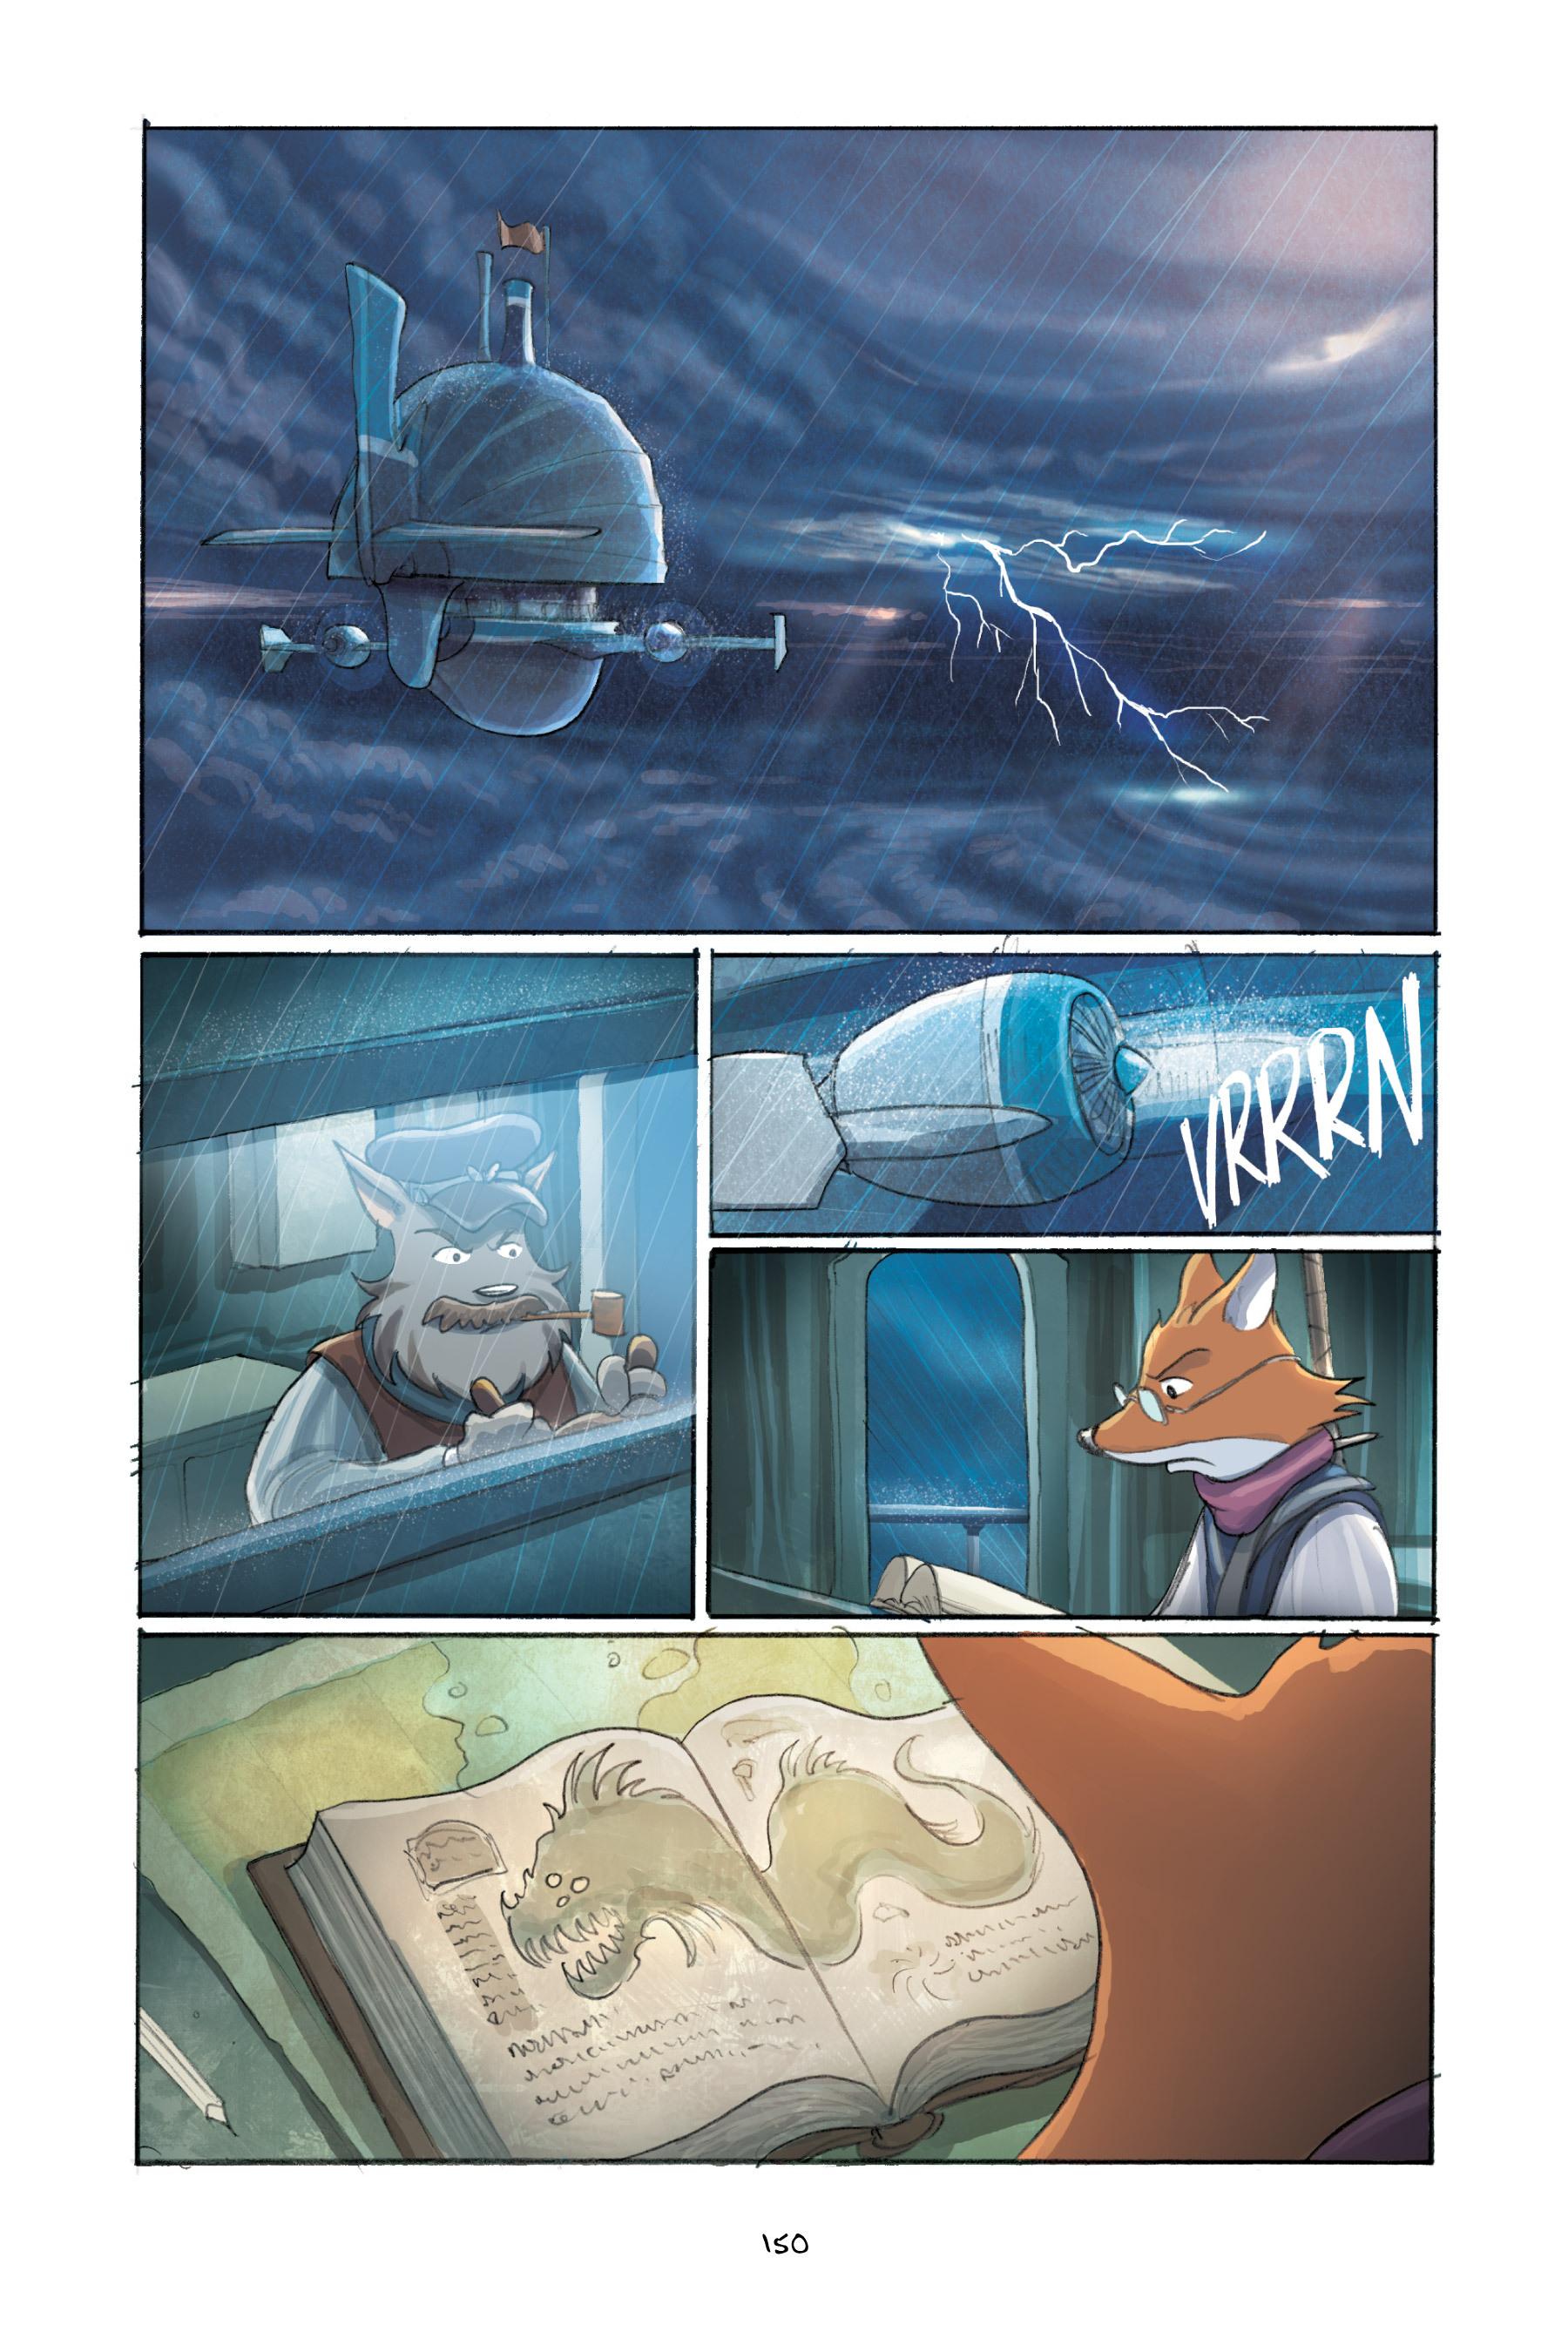 Read online Amulet comic -  Issue #3 - 147